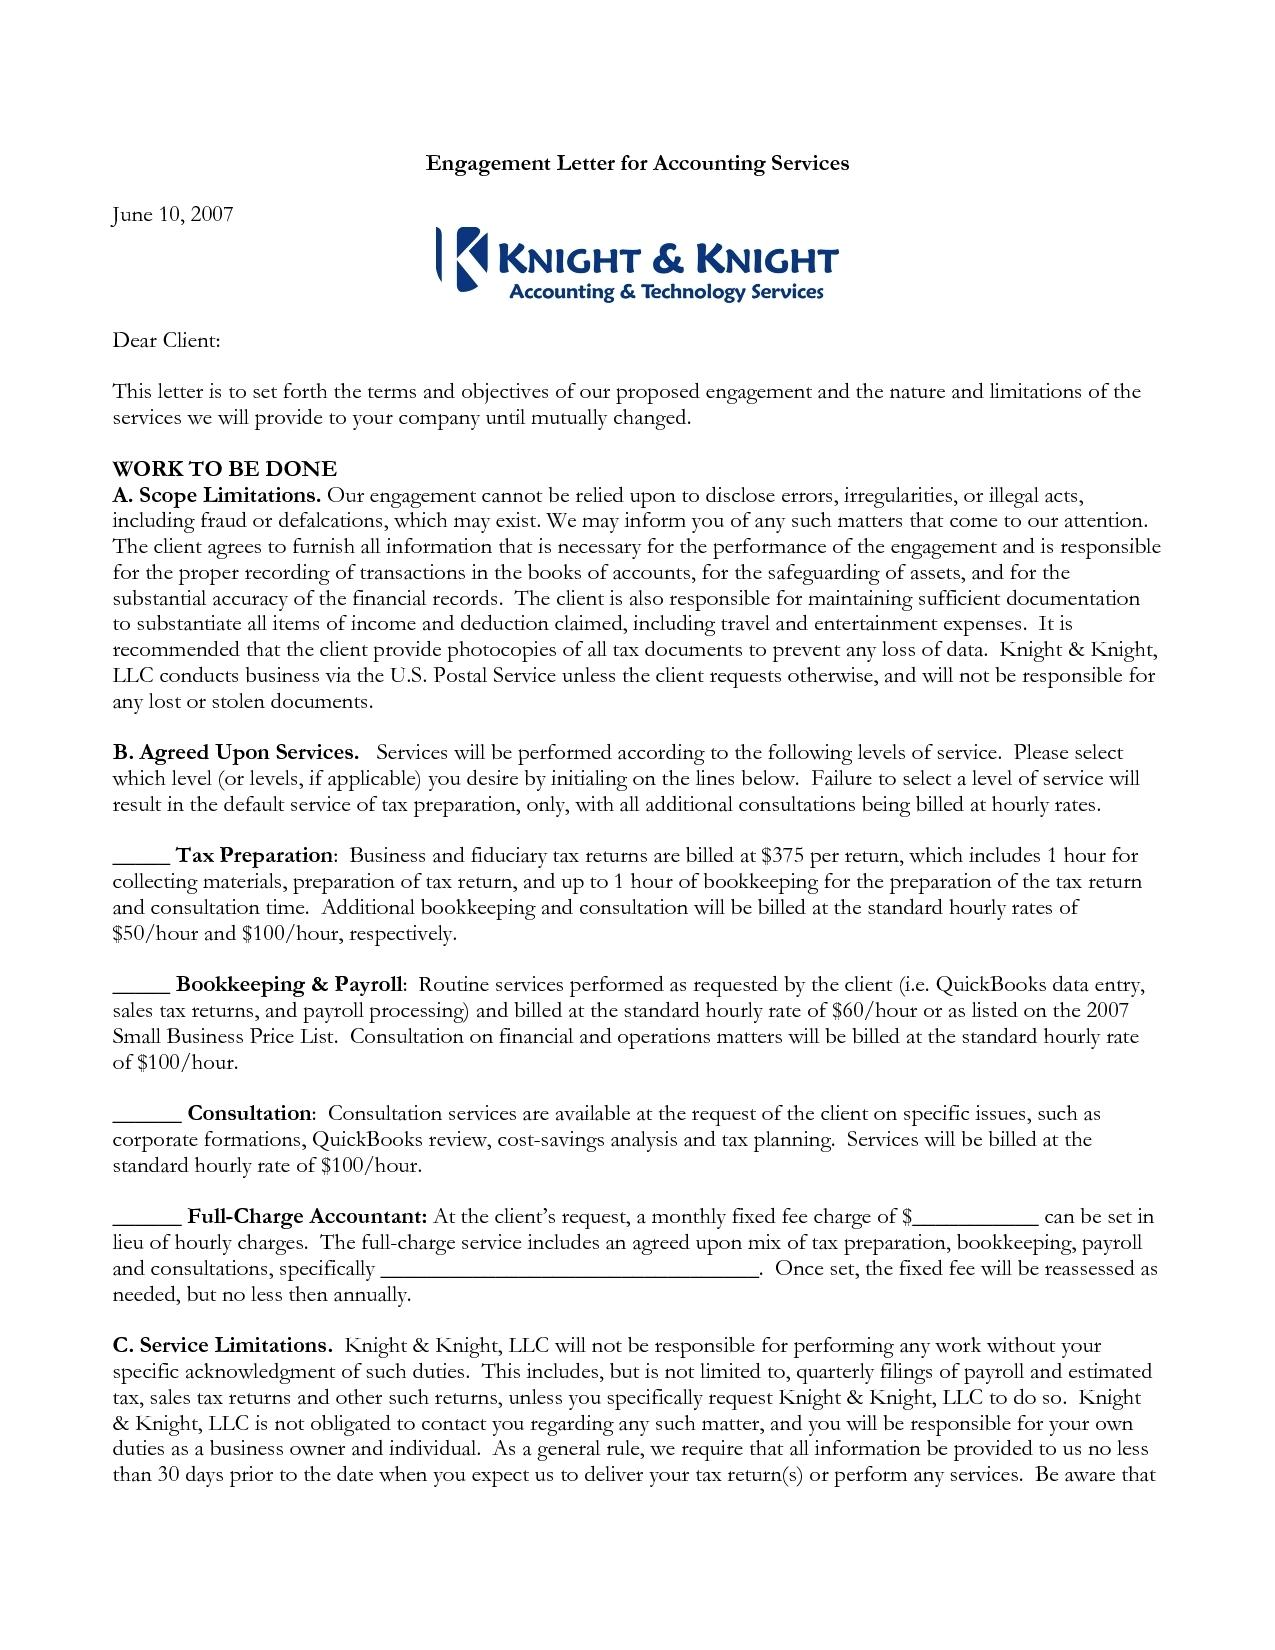 Accounting Engagement Letter Sample